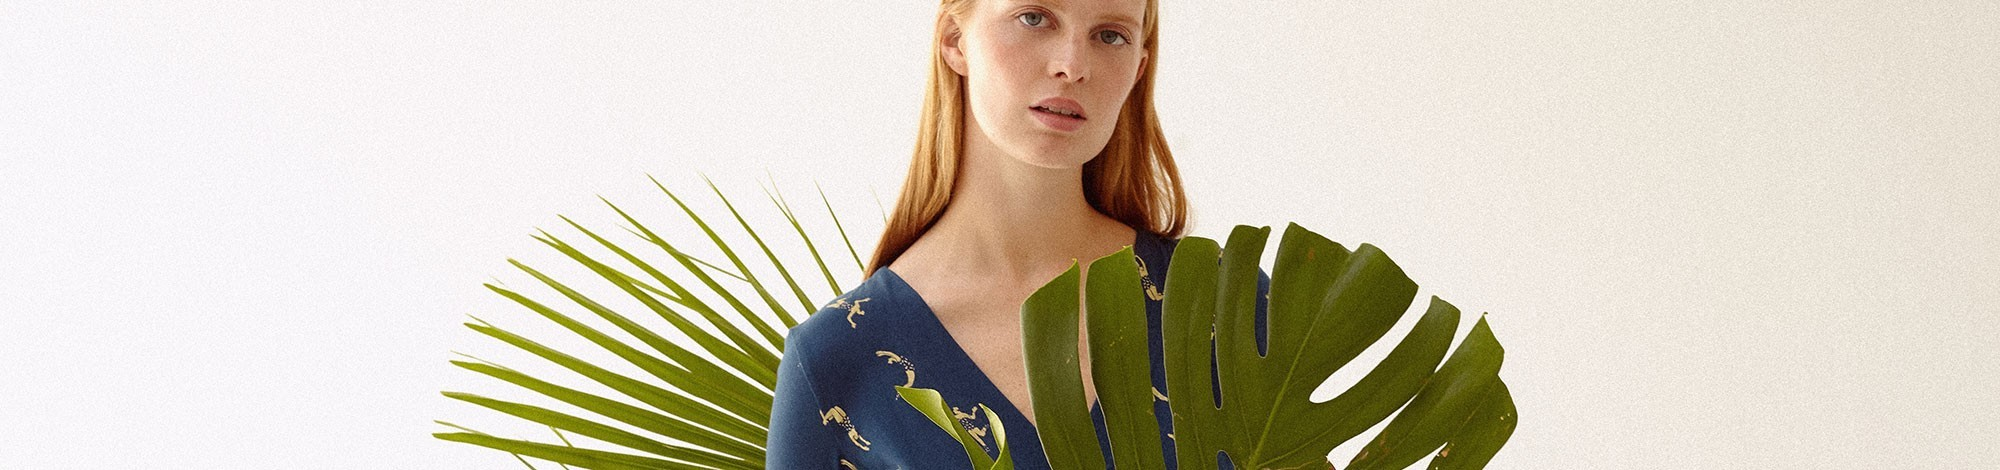 The most sustainable sales in garments for women, children and babies